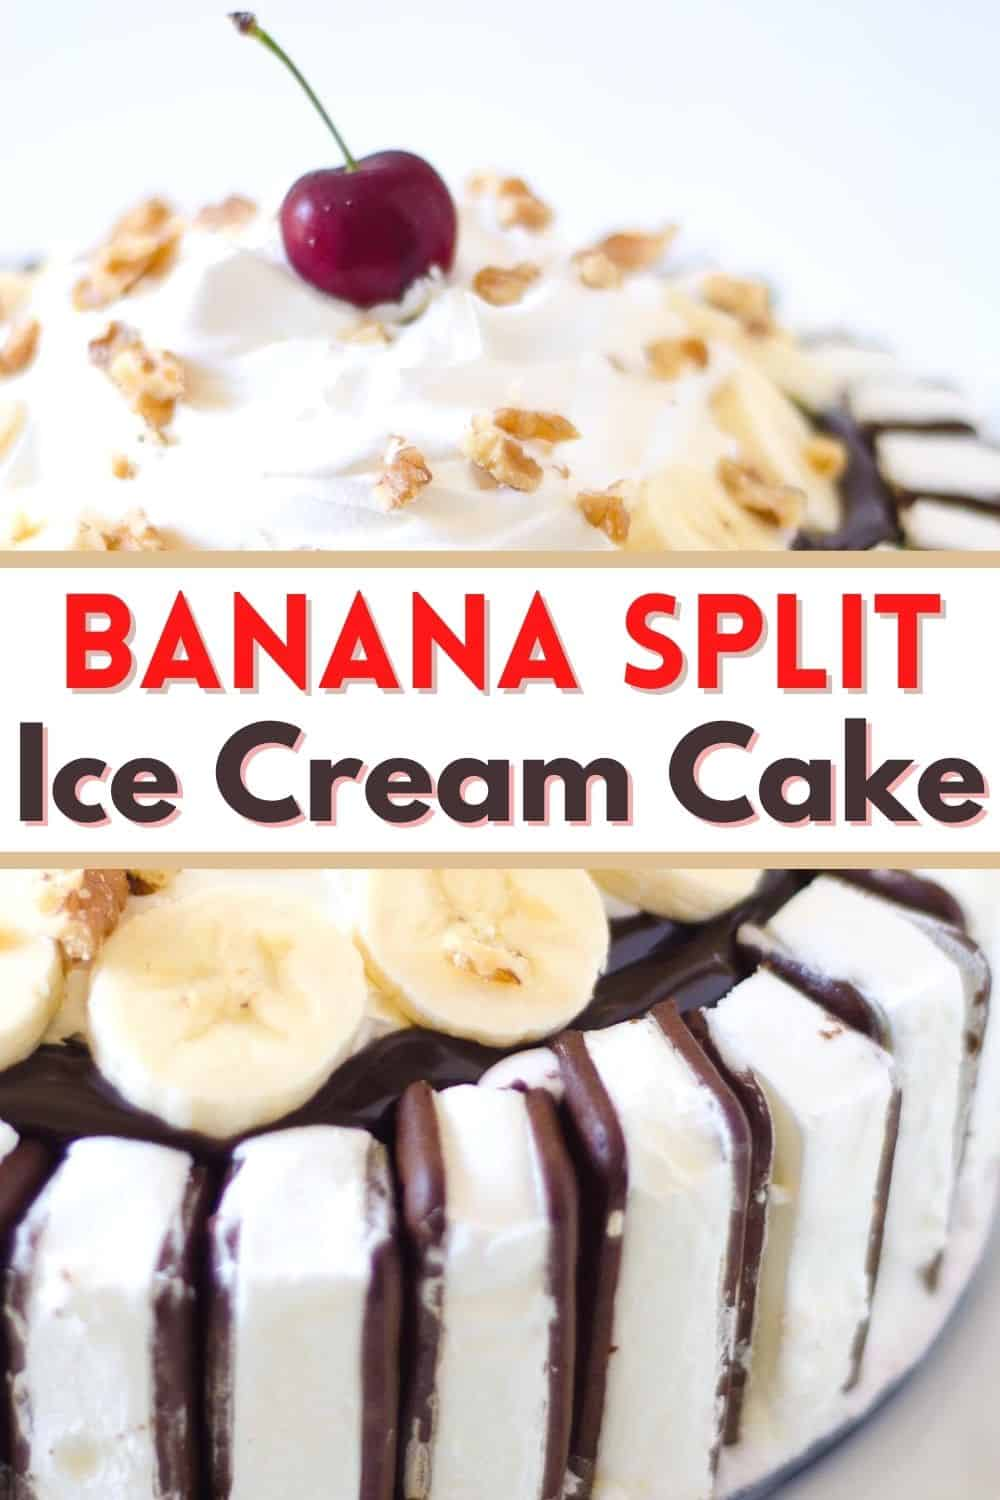 This banana split cake is the perfect all-American summer dessert! You will love this easy ice cream sandwich cake!